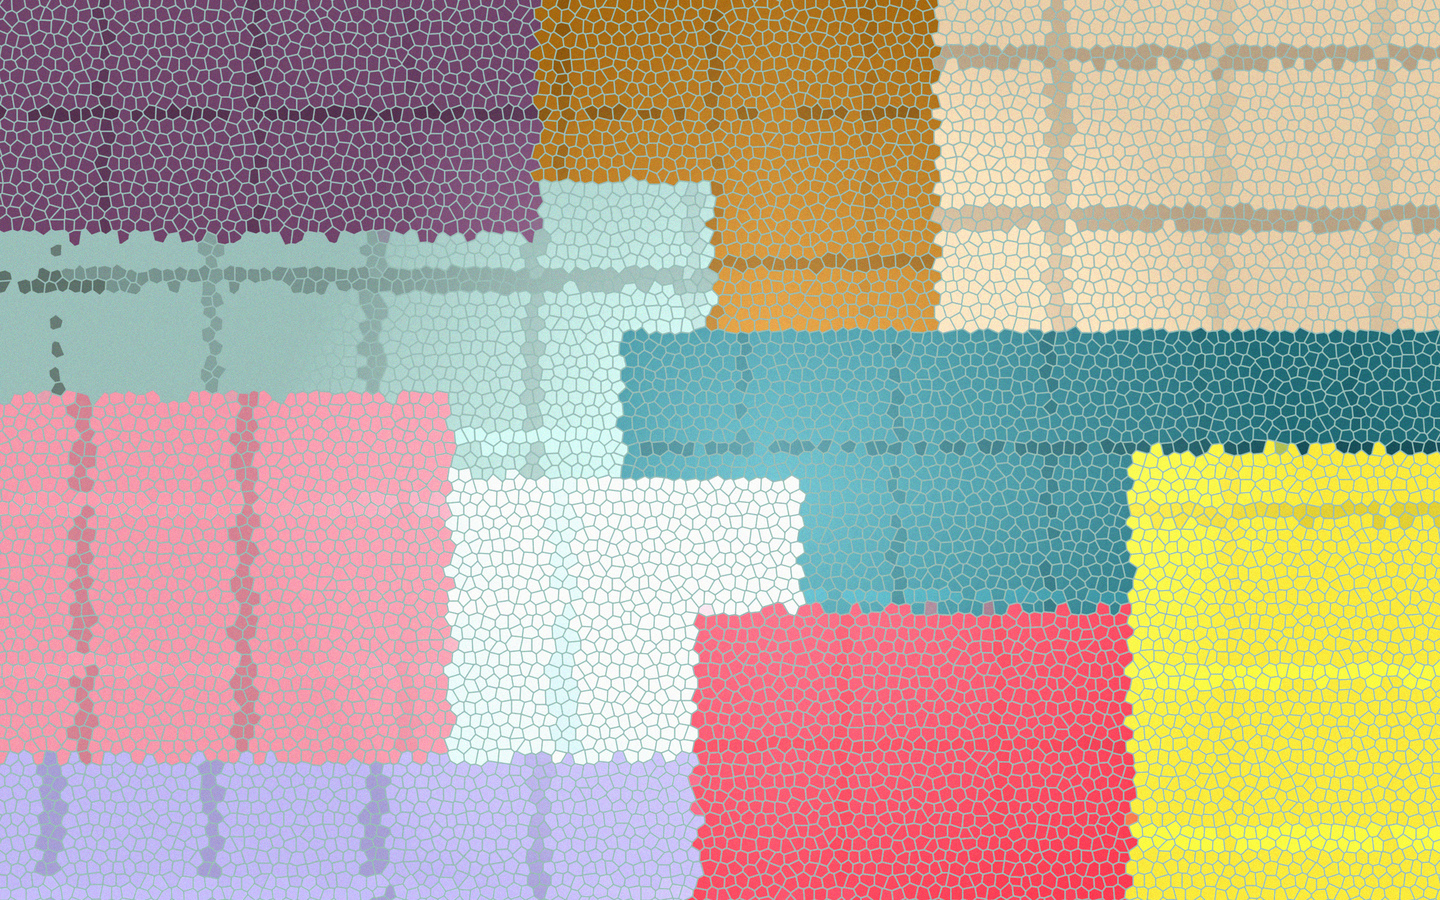 shapes-color-abstract-g8.jpg